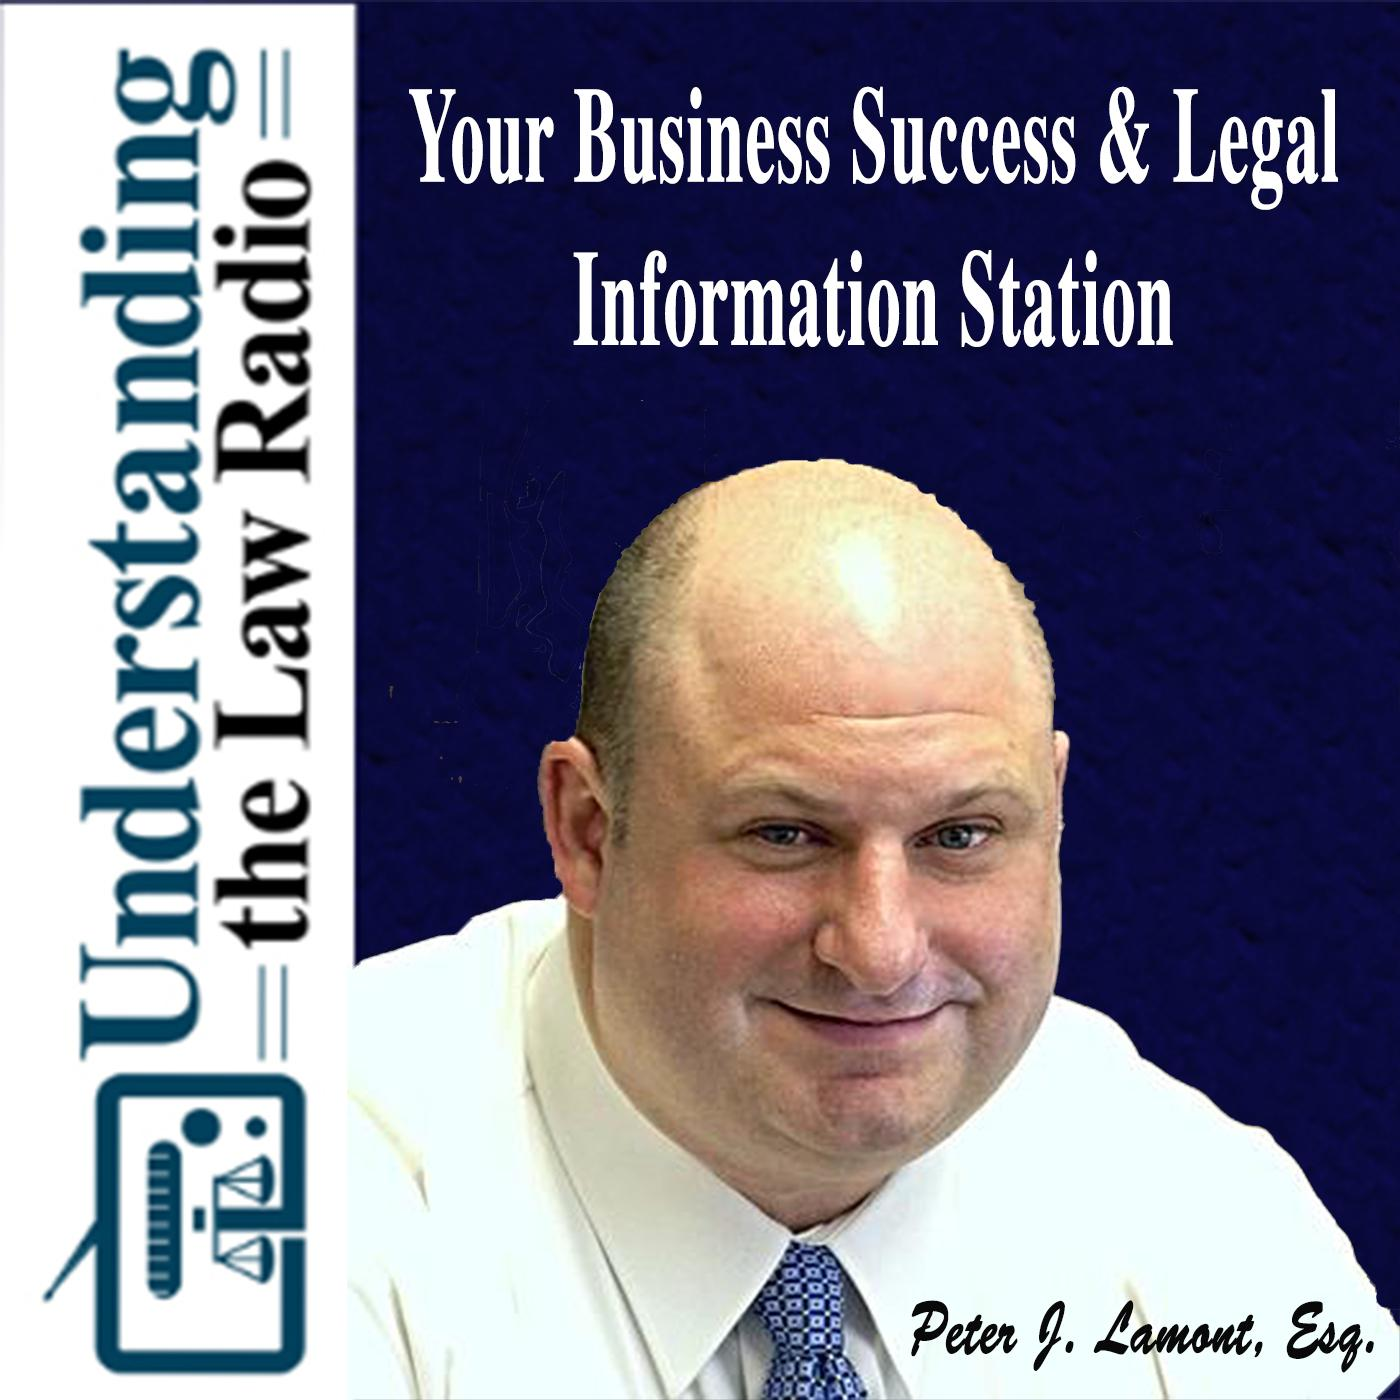 UTLRadio.com: Practical Legal and Business How-To and Advice